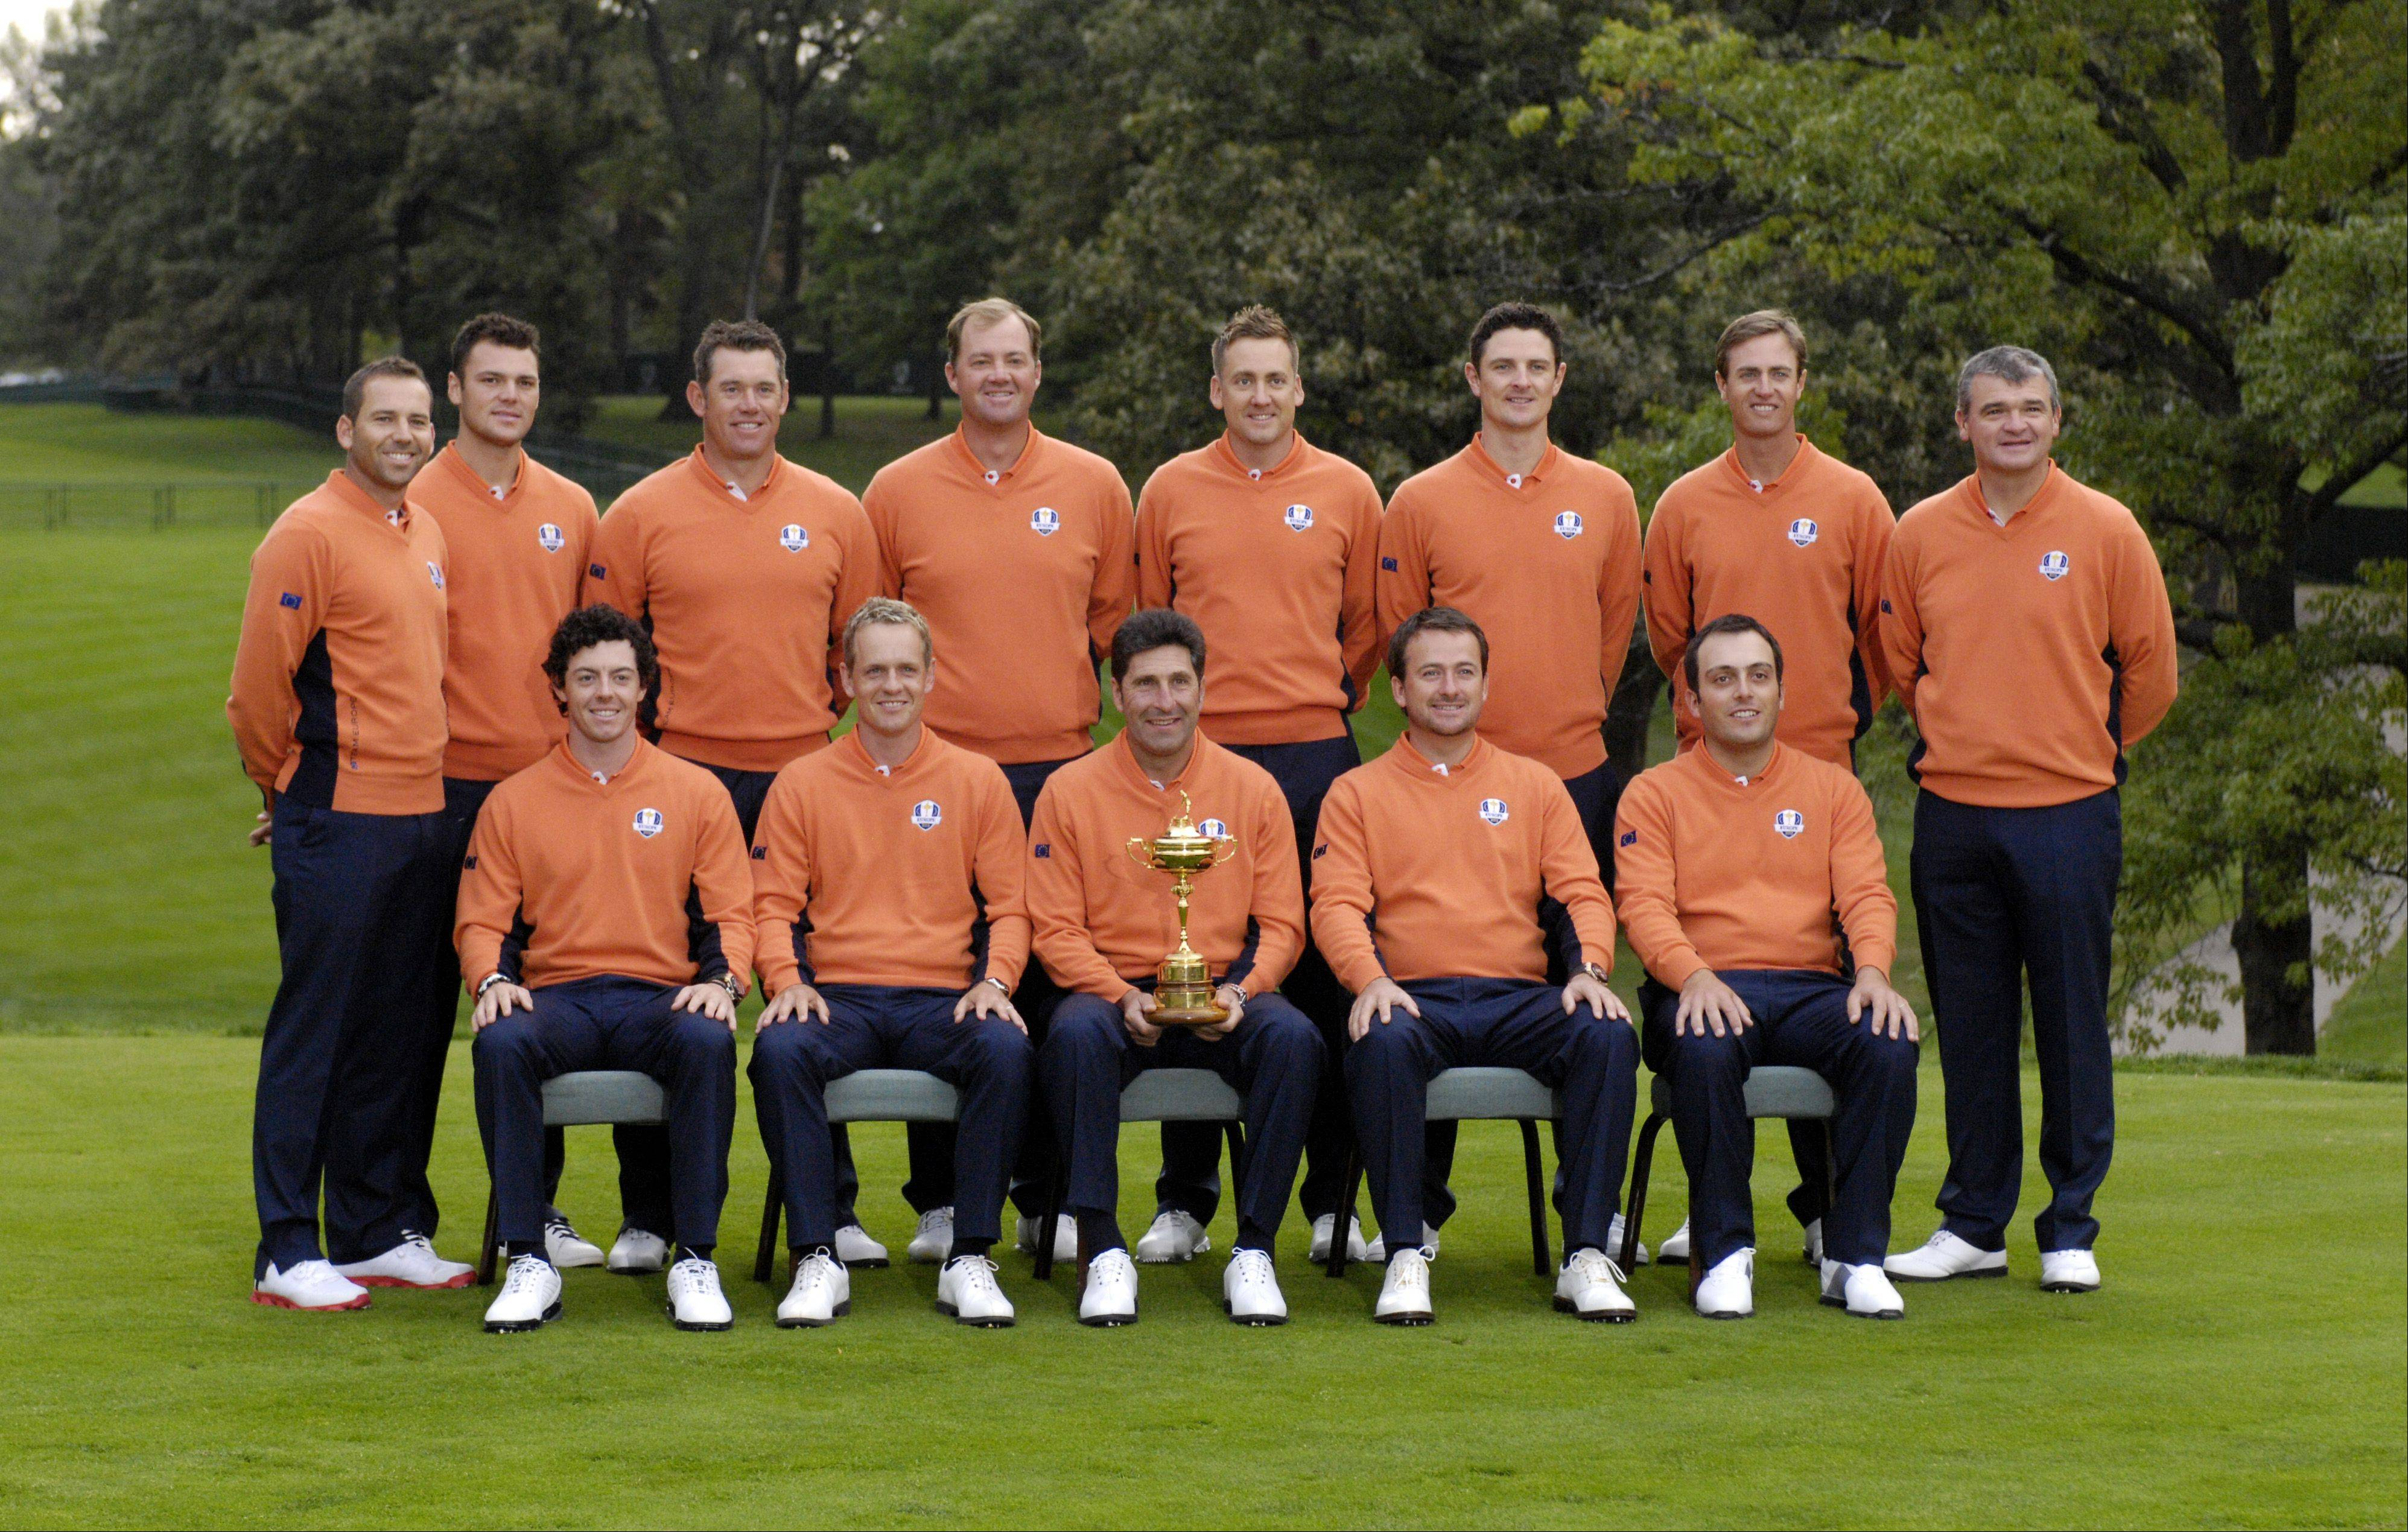 The European Ryder Cup team, lead by captian Jose Maria Olazabal, pose for their team portrait.